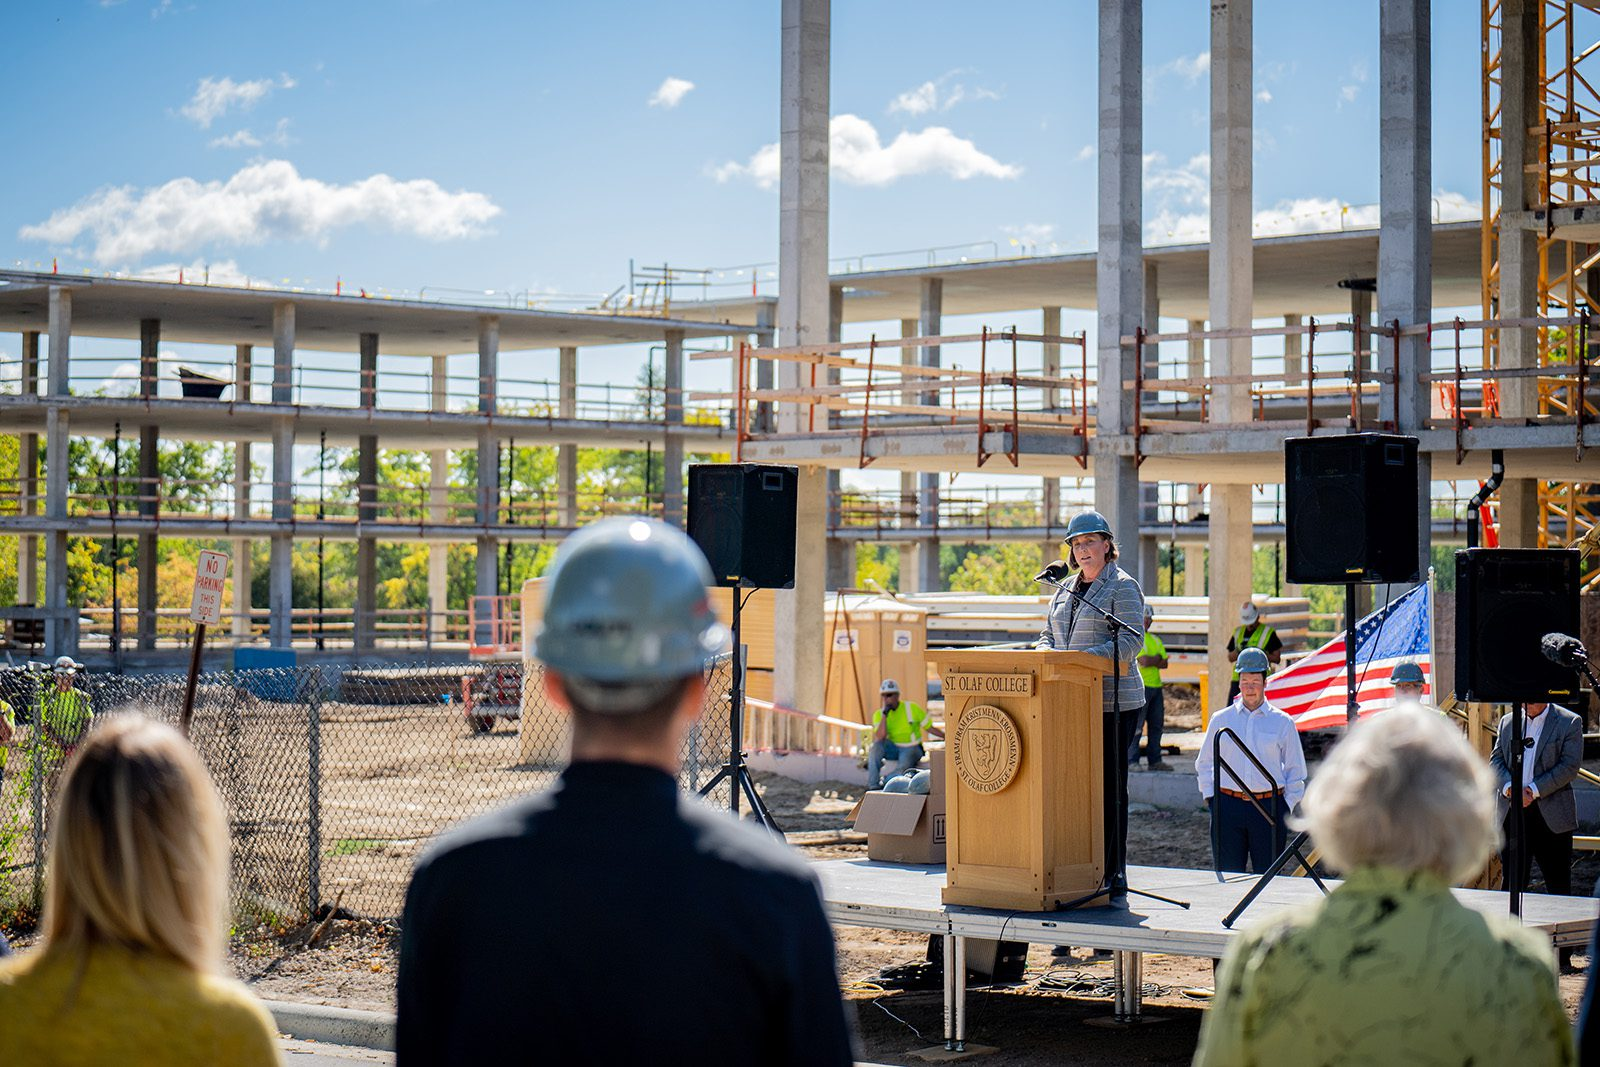 Associate Dean of Students for Residence Life Pamela McDowell speaks at the topping out ceremony, with the Ole Avenue Project construction behind her.